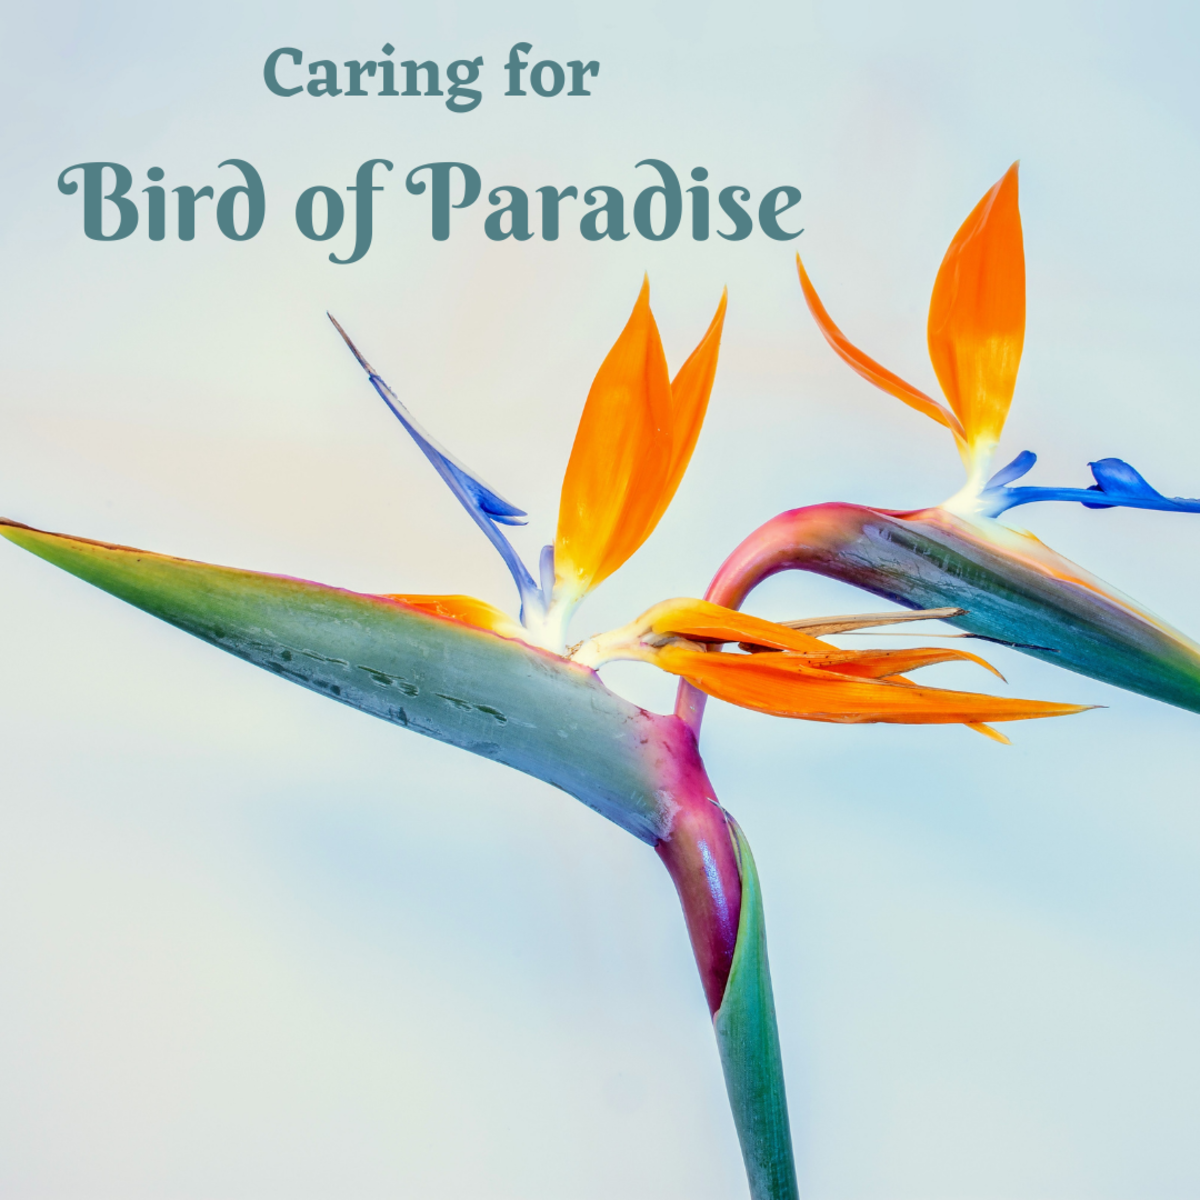 A guide to caring for a Bird of Paradise, also known as Strelitzia